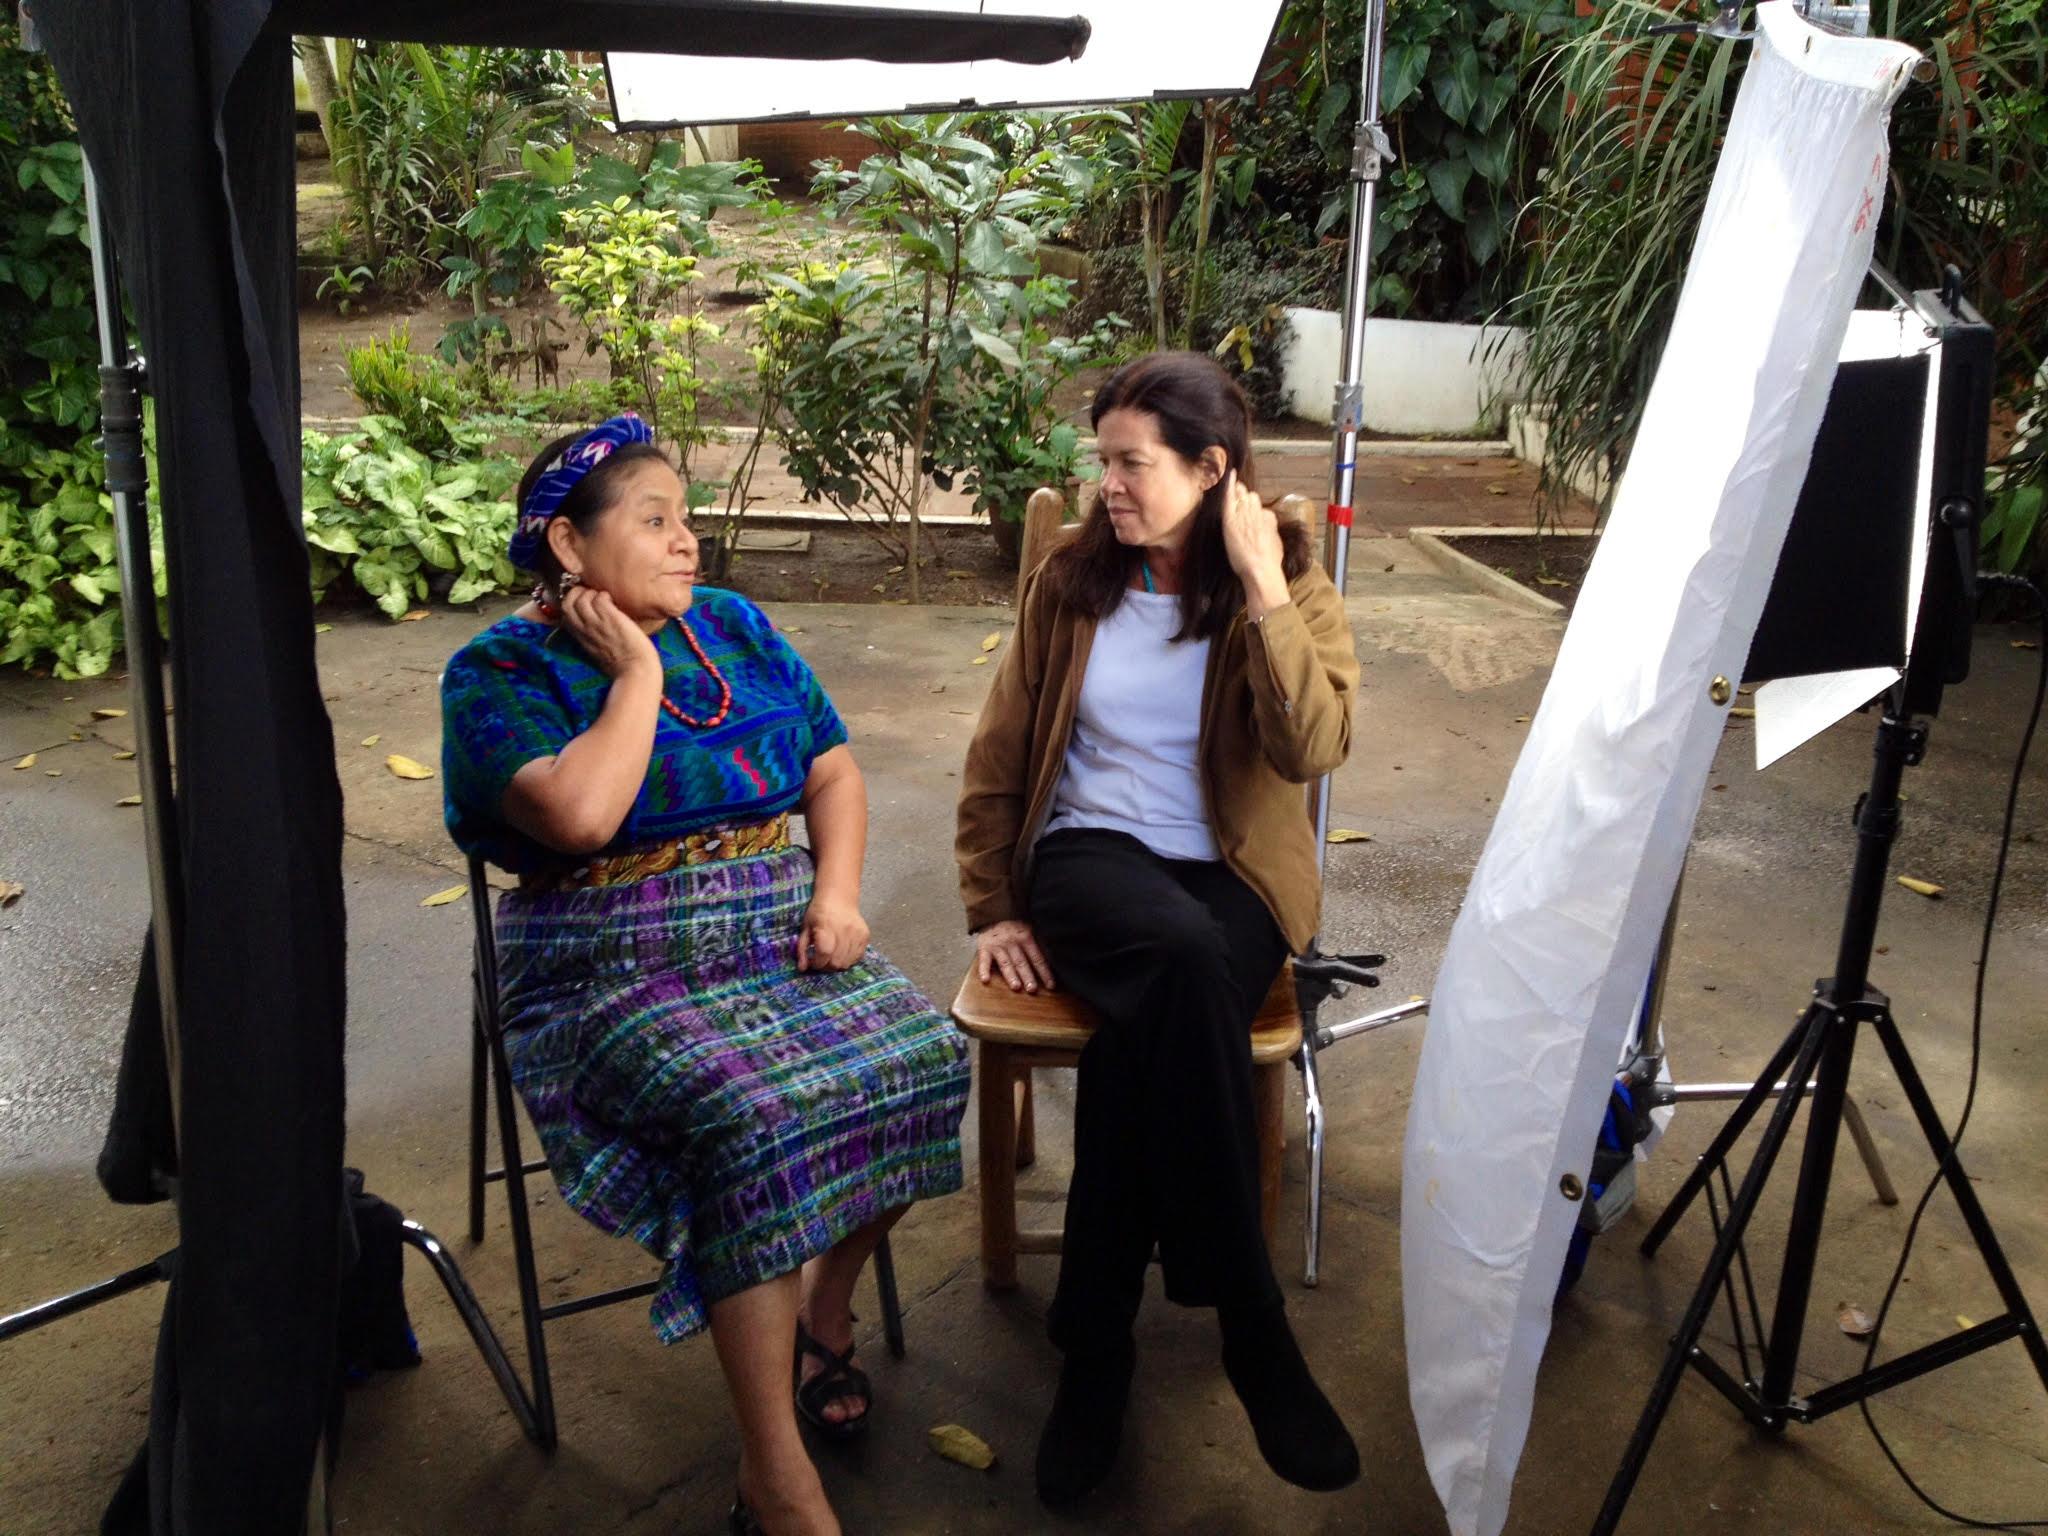 Nobel Laureate Rigoberta Menchú and Pamela Yates filming in Guatemala in 2013. Photo by Melle van Essen / skylight.is.